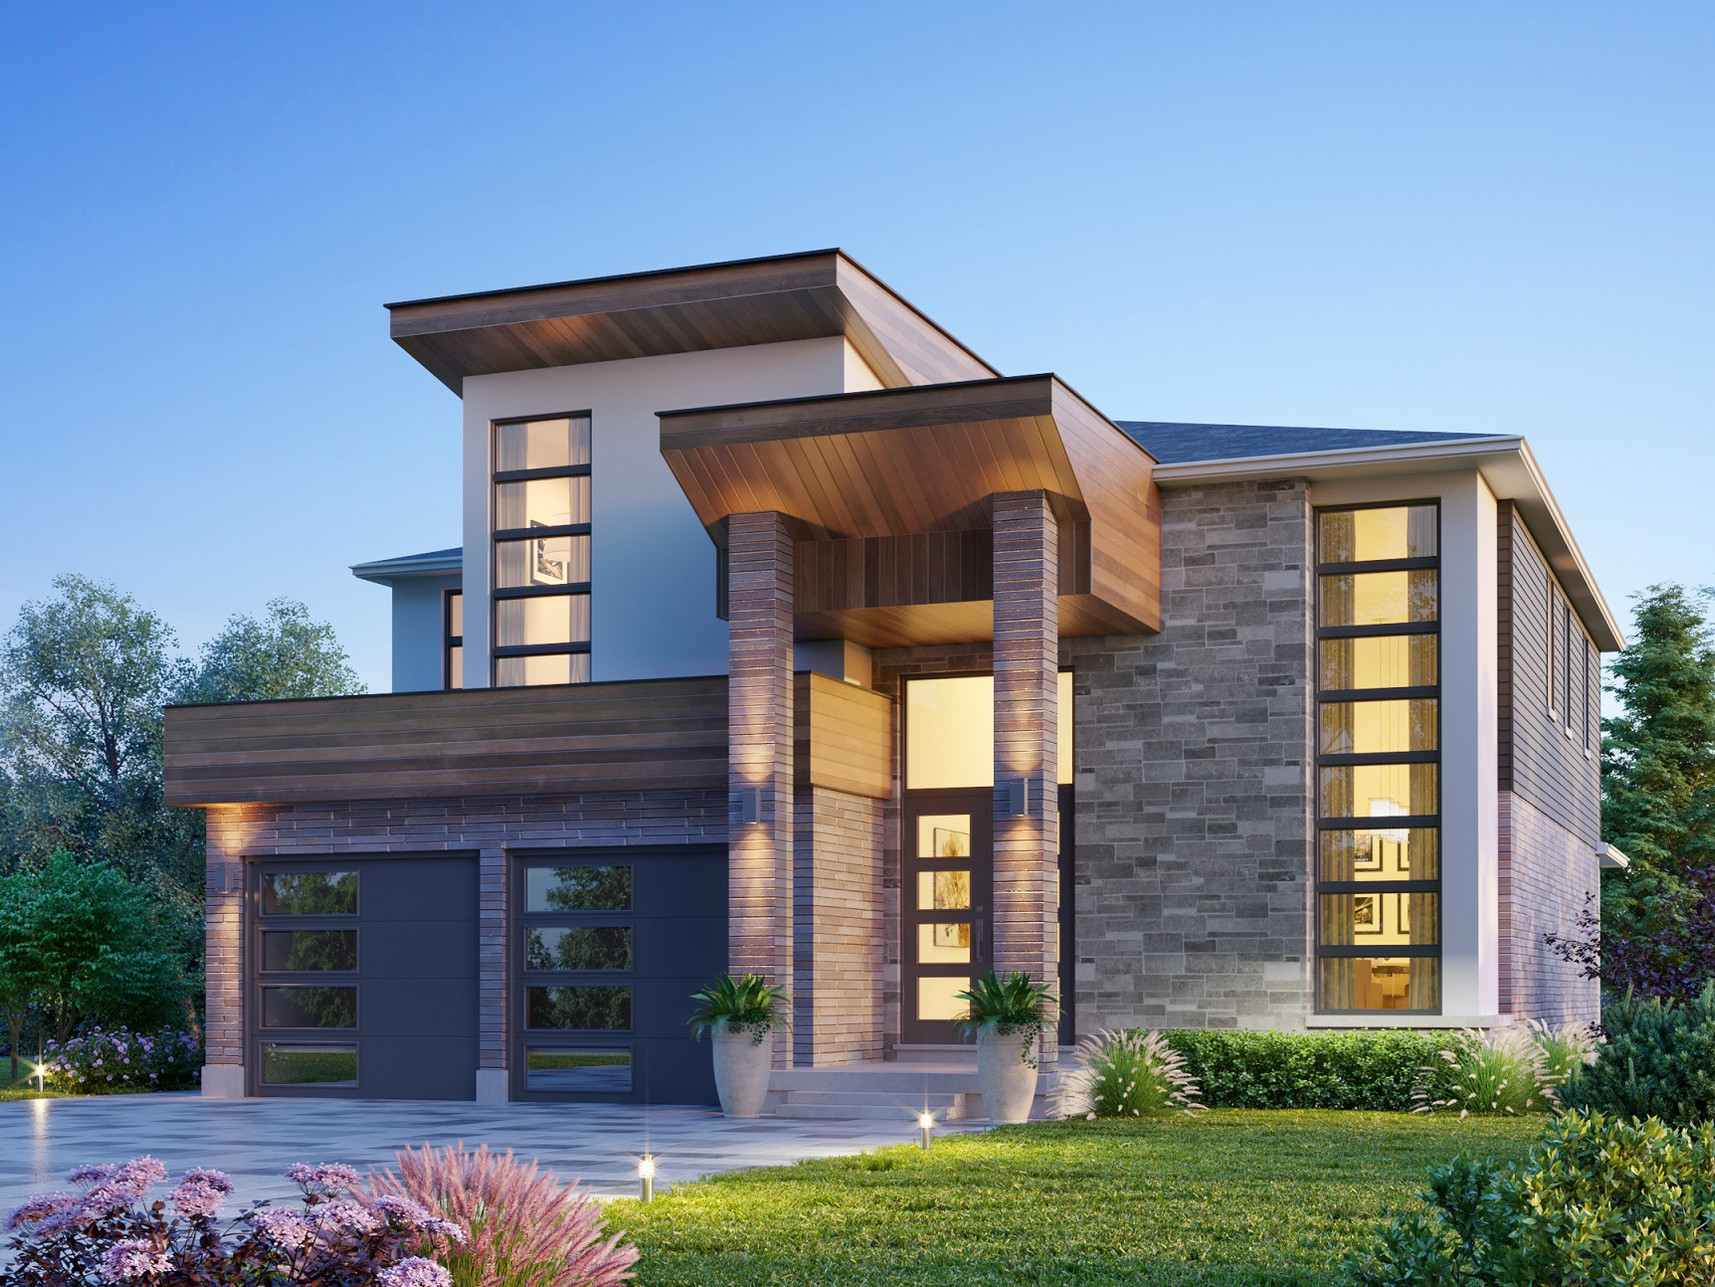 The Amethyst Contemporary